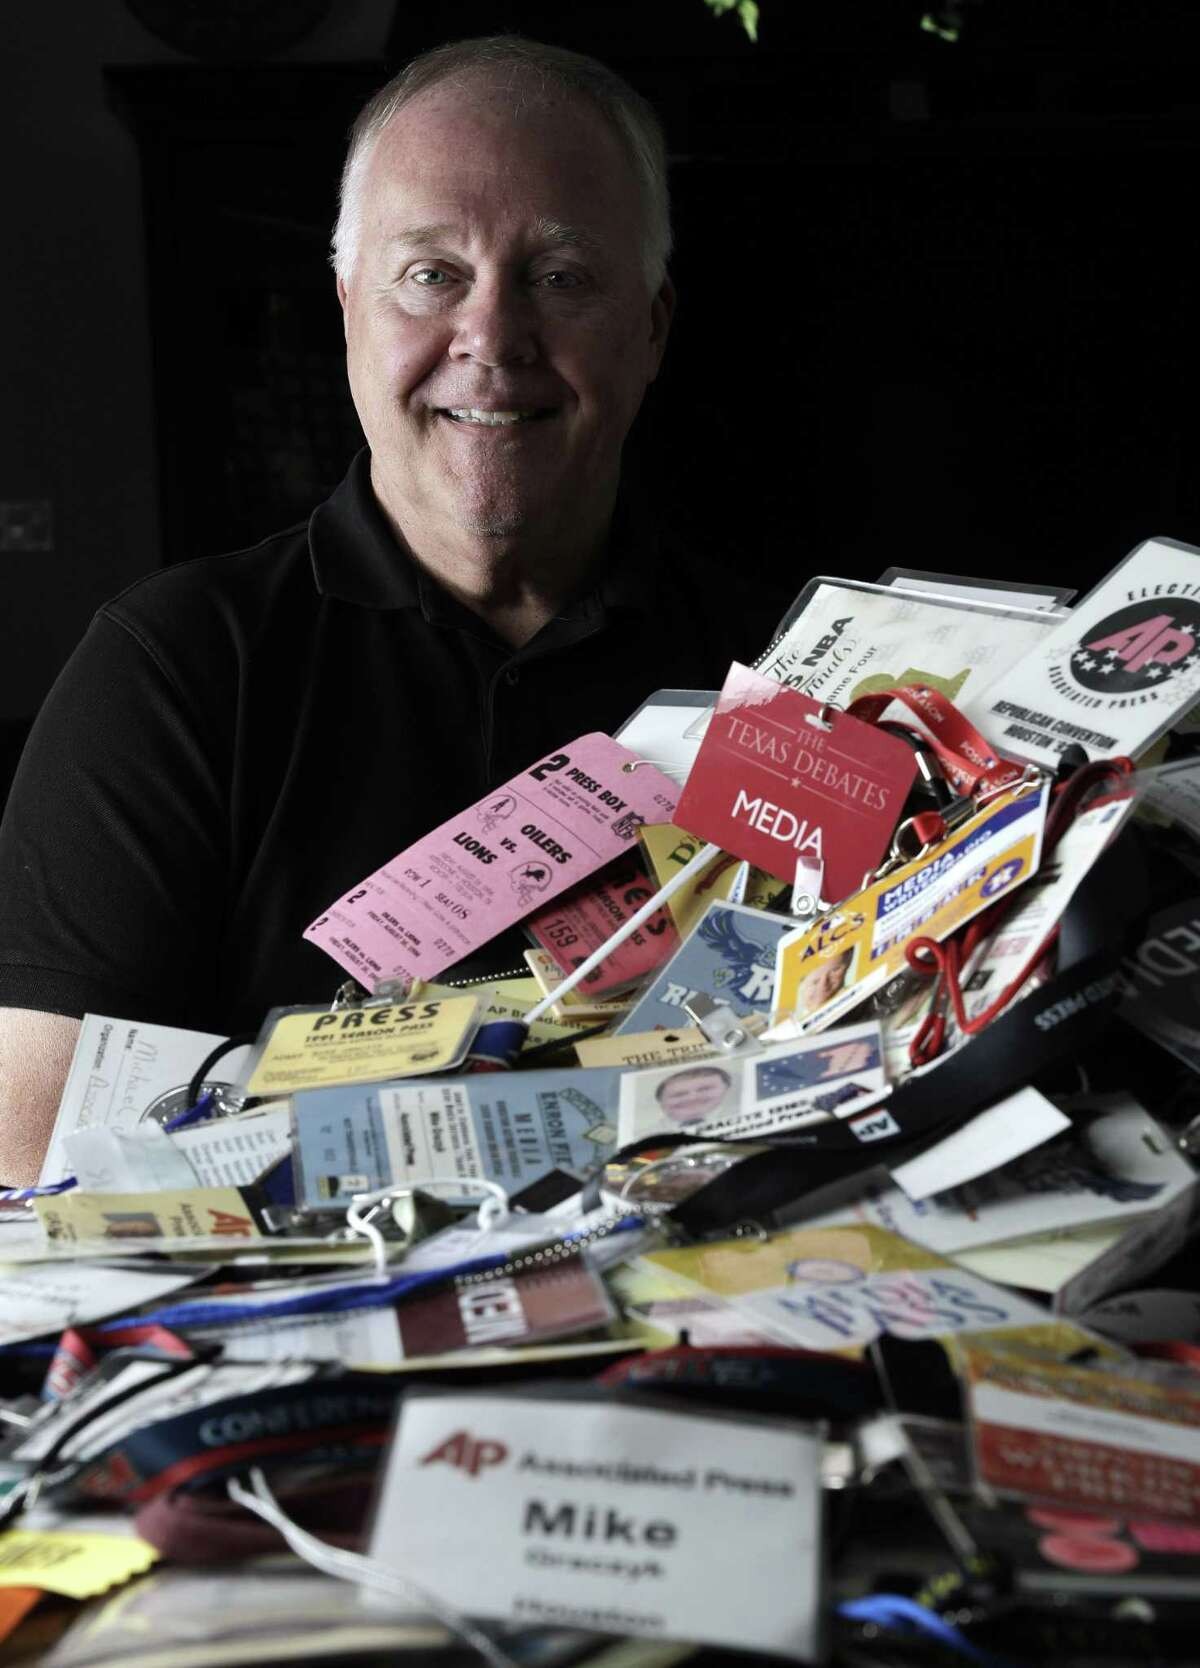 Veteran Associated Press reporter Michael Graczyk poses with some of many media credentials he has been issued over his career with the AP.